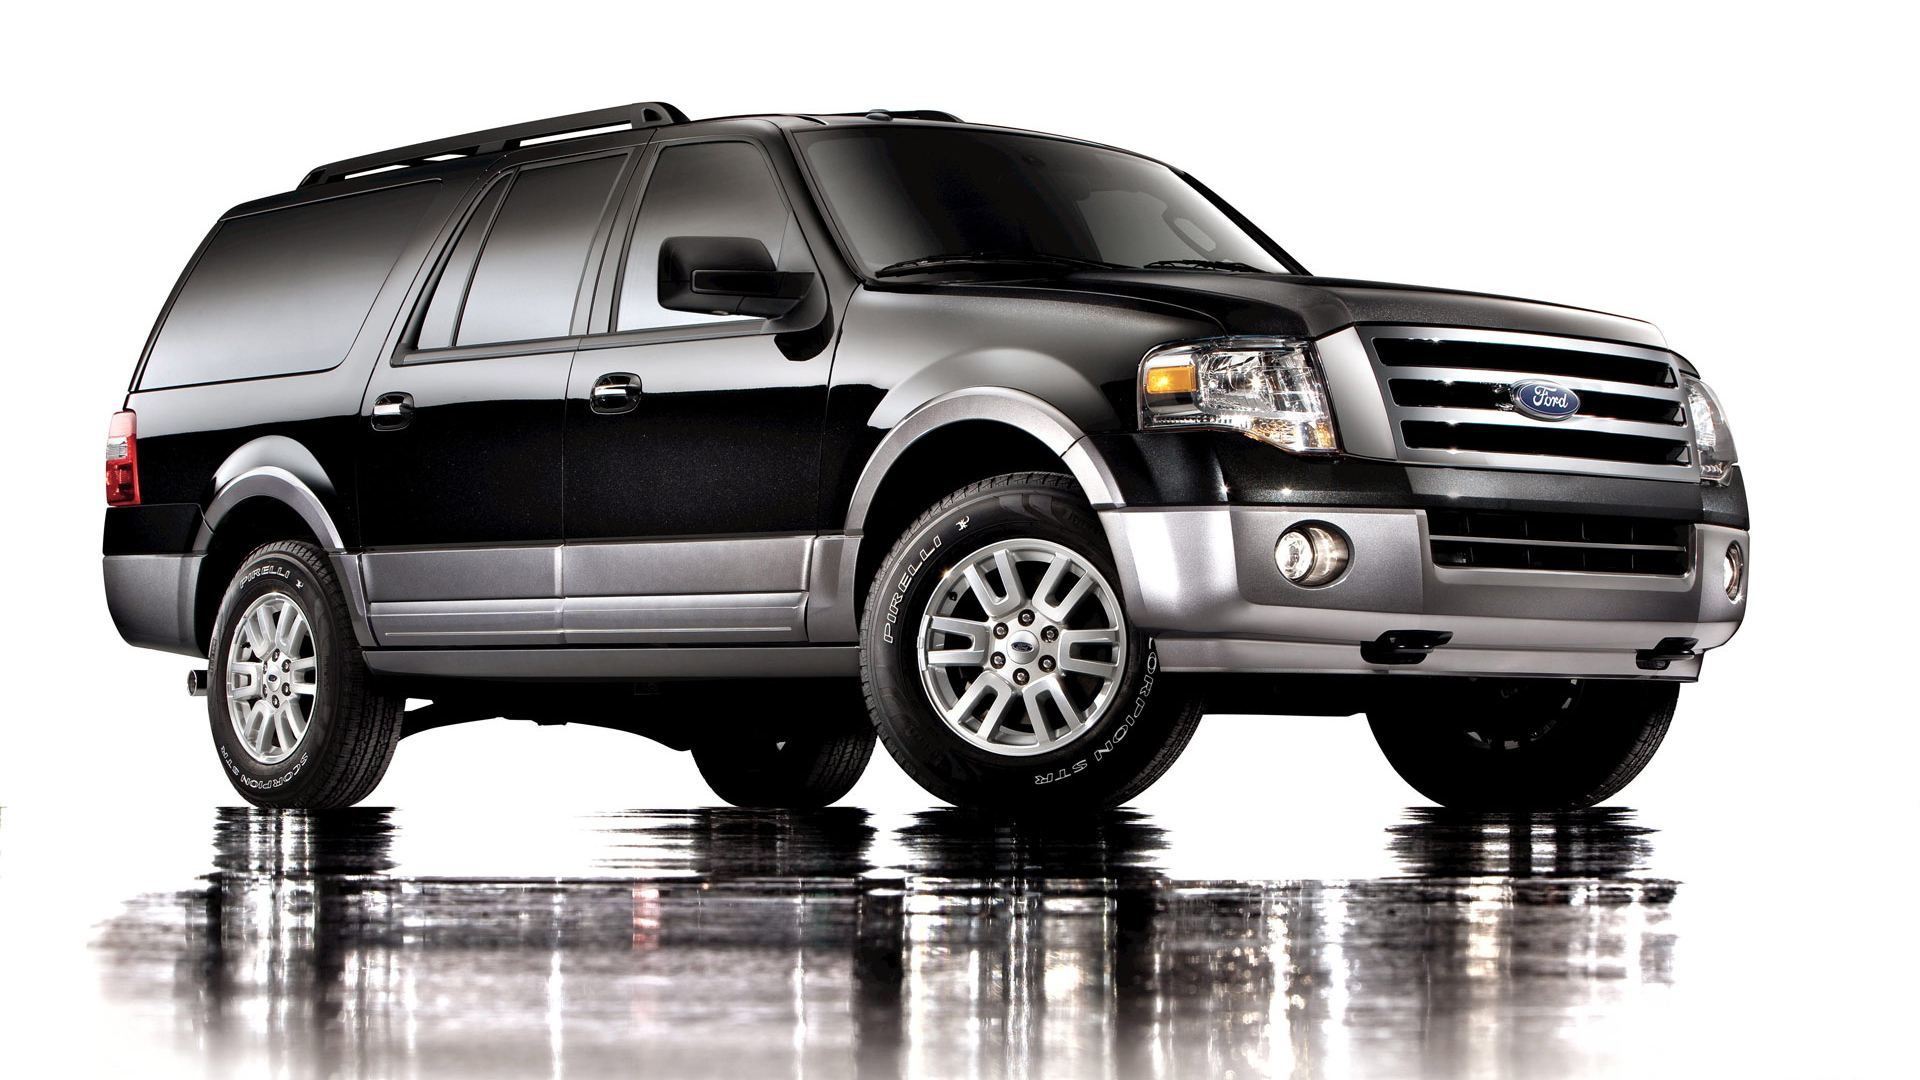 Ford Expedition Wallpaper